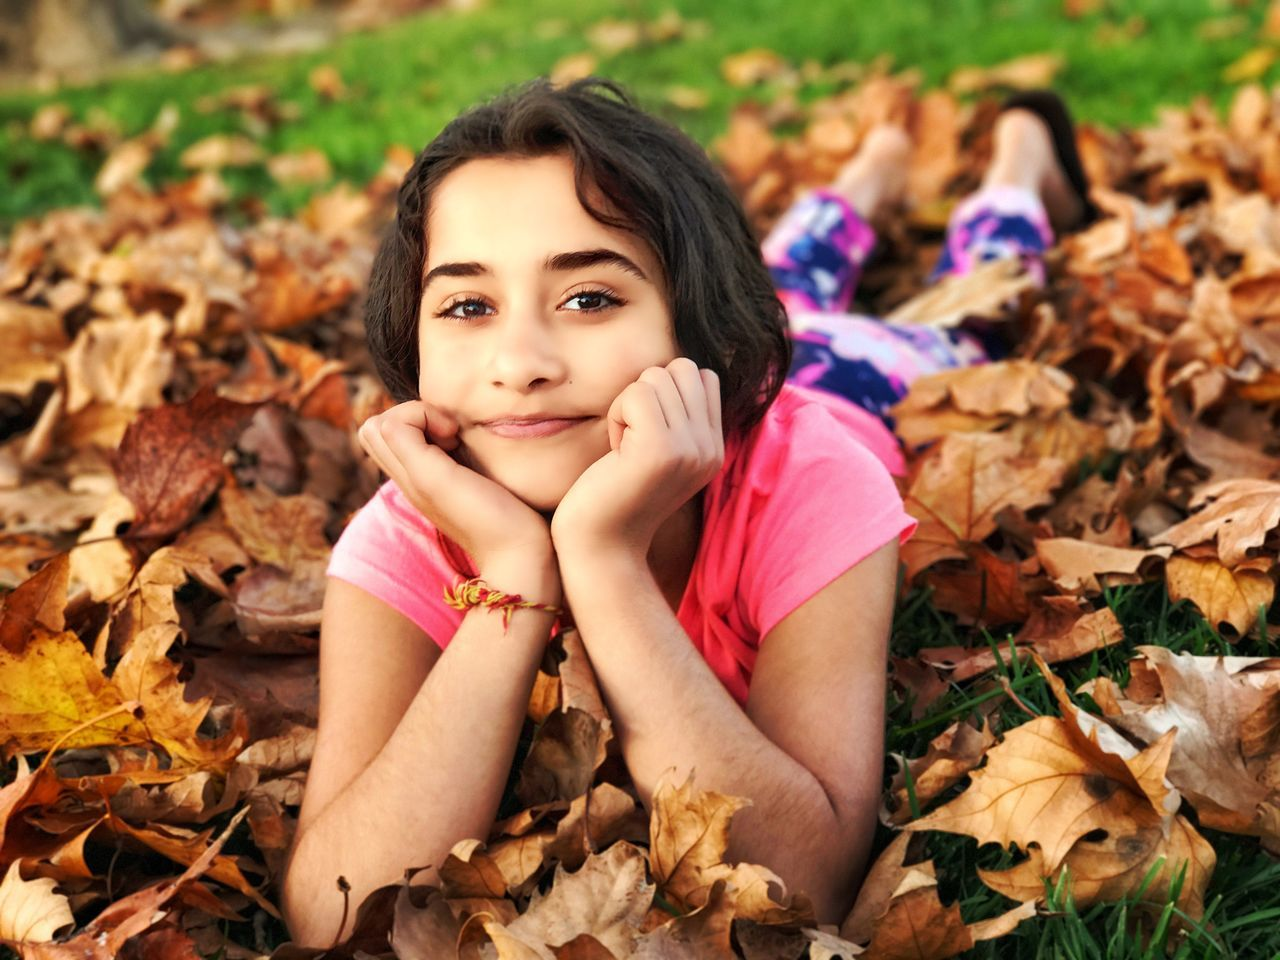 With kids in the park Looking At Camera Portrait Beautiful People Autumn Beauty Leaf Contemplation Outdoors Nature Beauty In Nature Beautiful Woman One Person Sitting Adult Women Young Adult Lying Down People Smiling Close-up